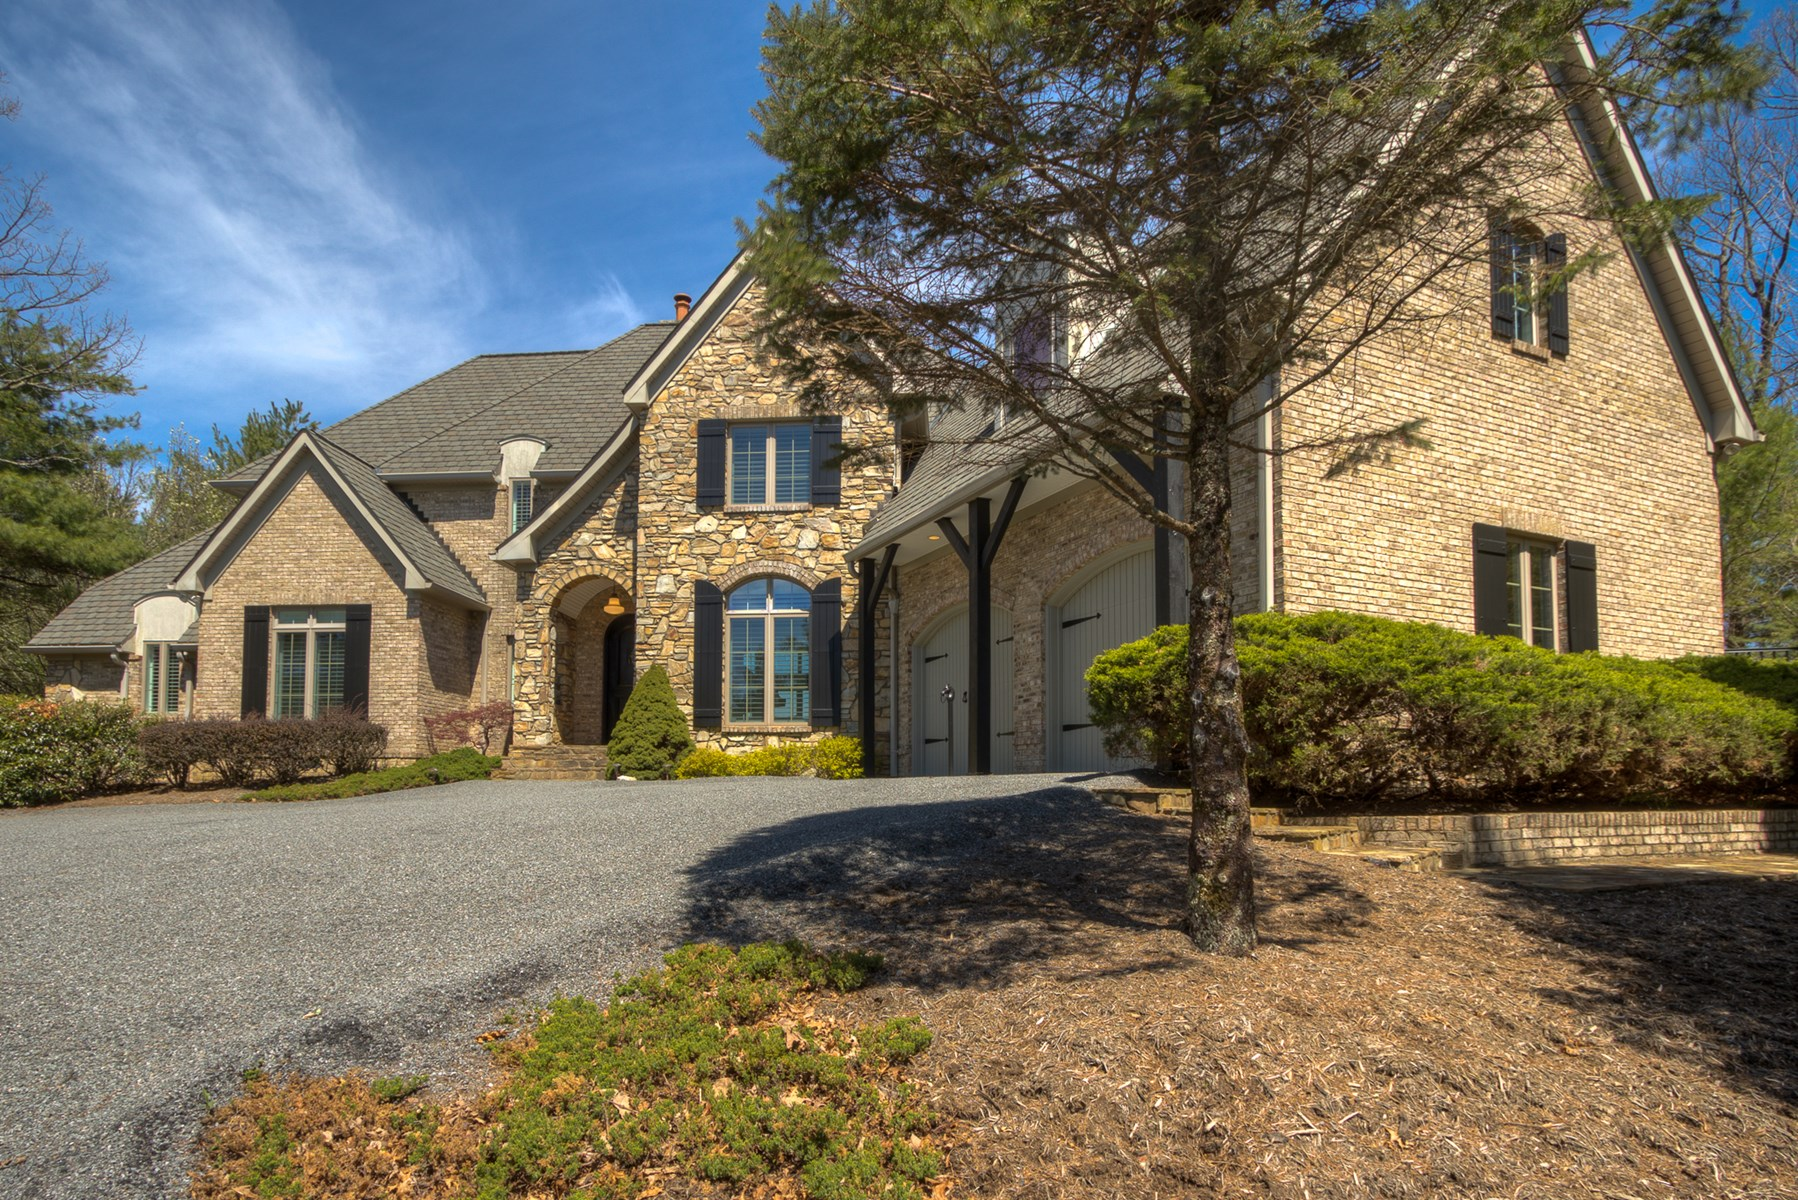 Exquisite Custom Home for Sale in the Blue Ridge Mountains